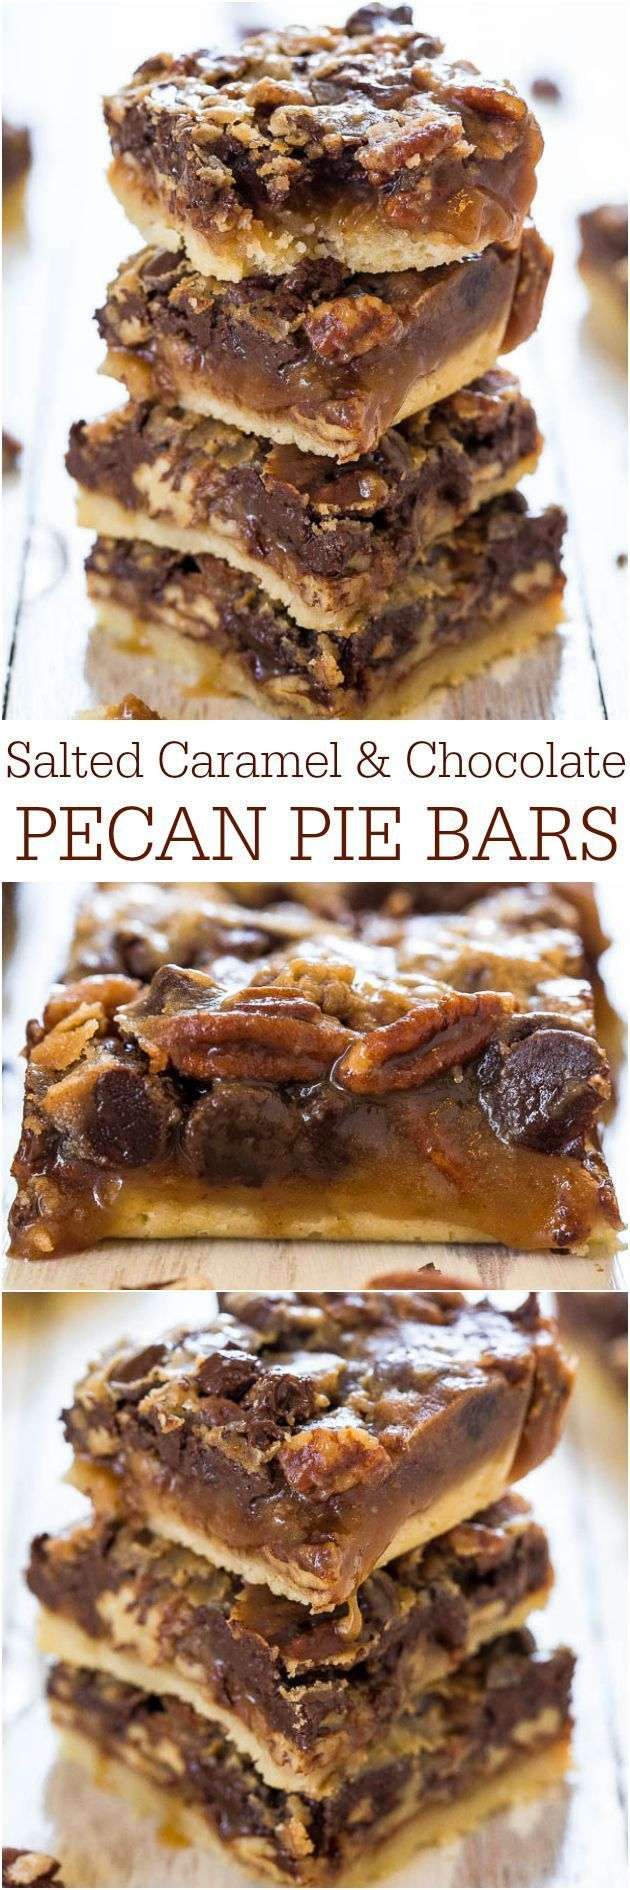 Salted Caramel and Chocolate Pecan Pie Bars | Pecan pie ...